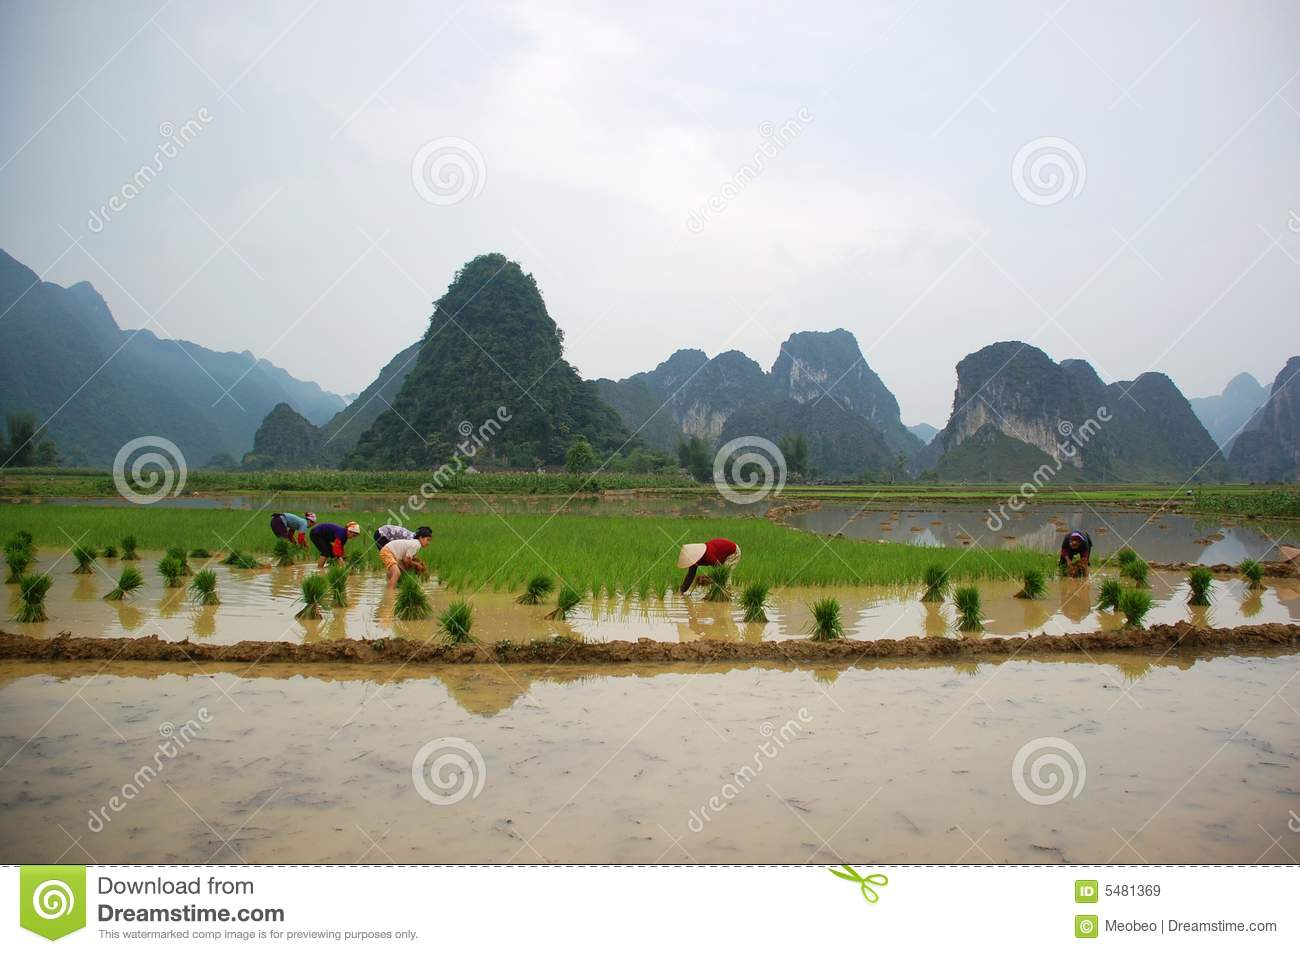 Women are growing rice on the valley